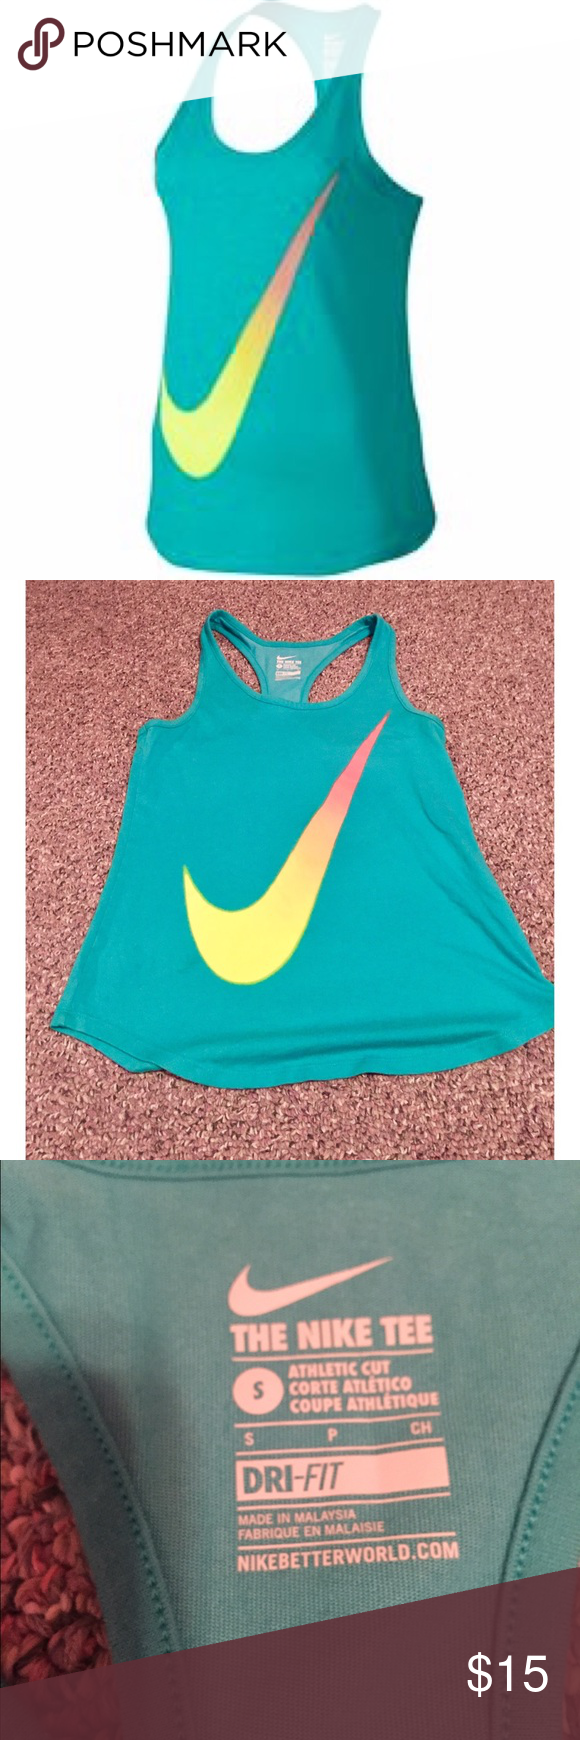 ✨NWOT✨ Nike Gradient Swoosh Tank Top New without tags. Size Small. Turquoise blue color with colorful gradient swoosh on front. Nike Tops Tank Tops